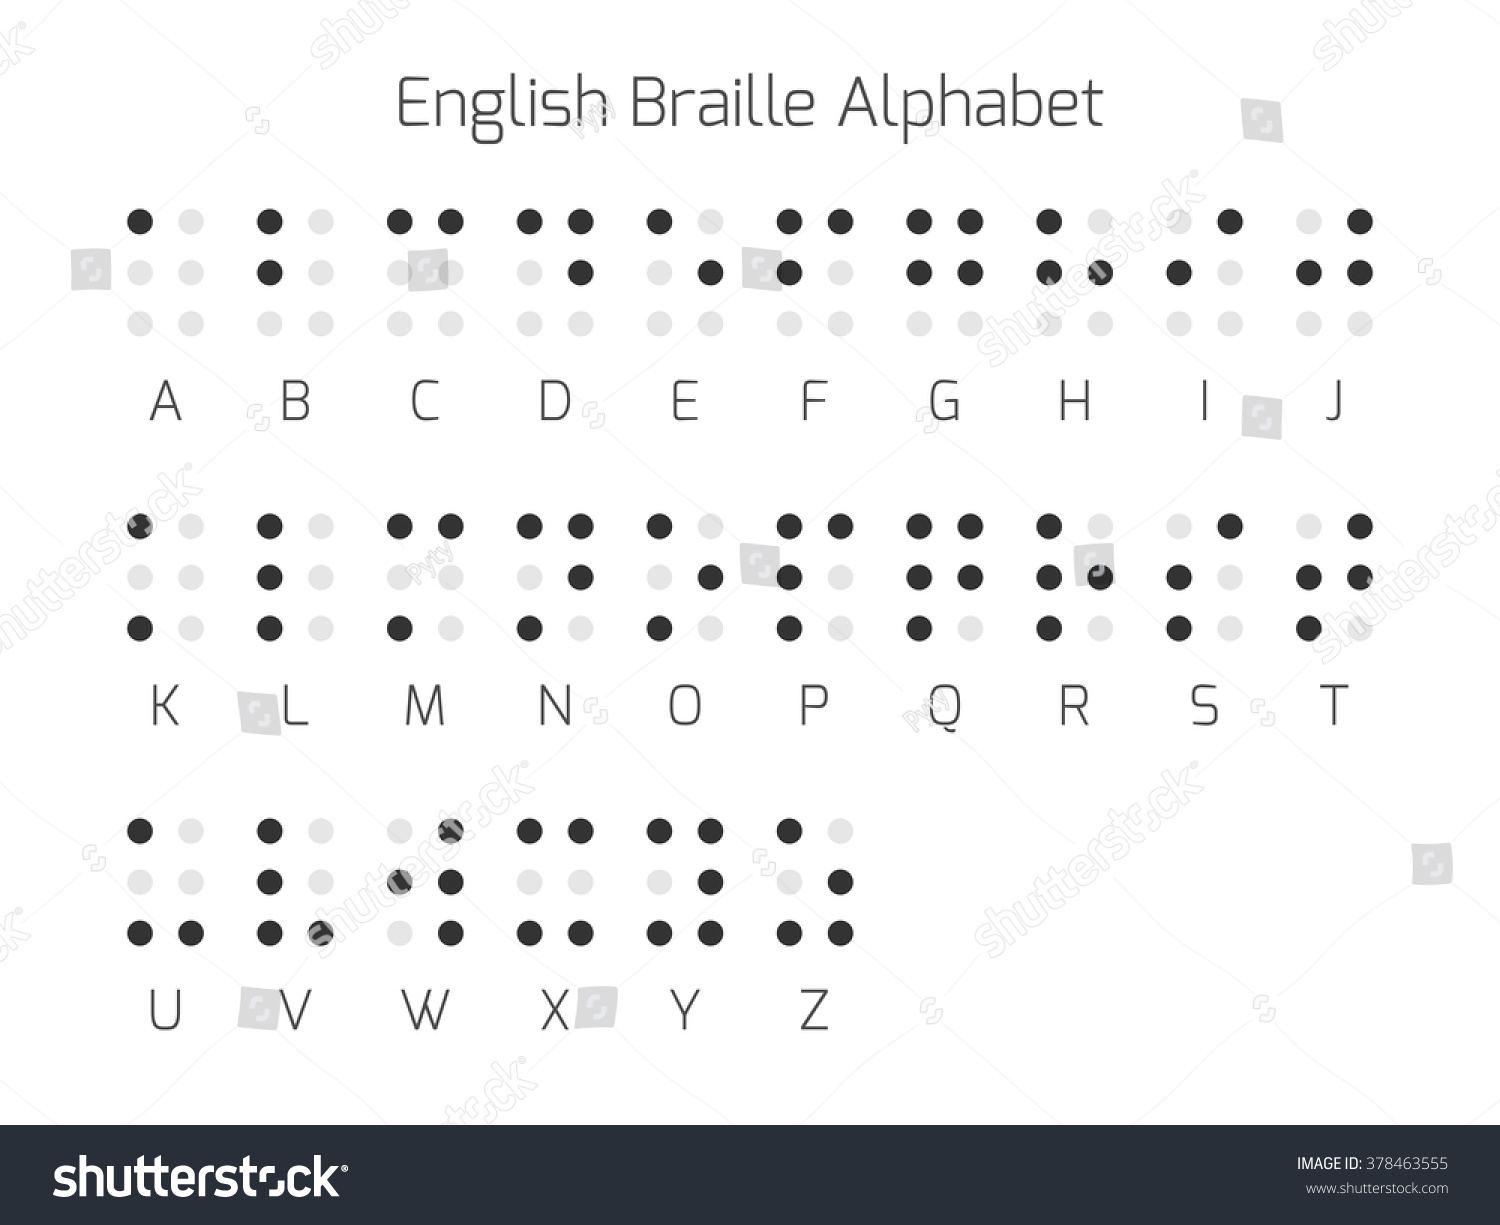 how to write braille How to read and write braille alphabet letters & numbers - grade 1: step by step printed braille language workbook for beginners-not including contracted braille.